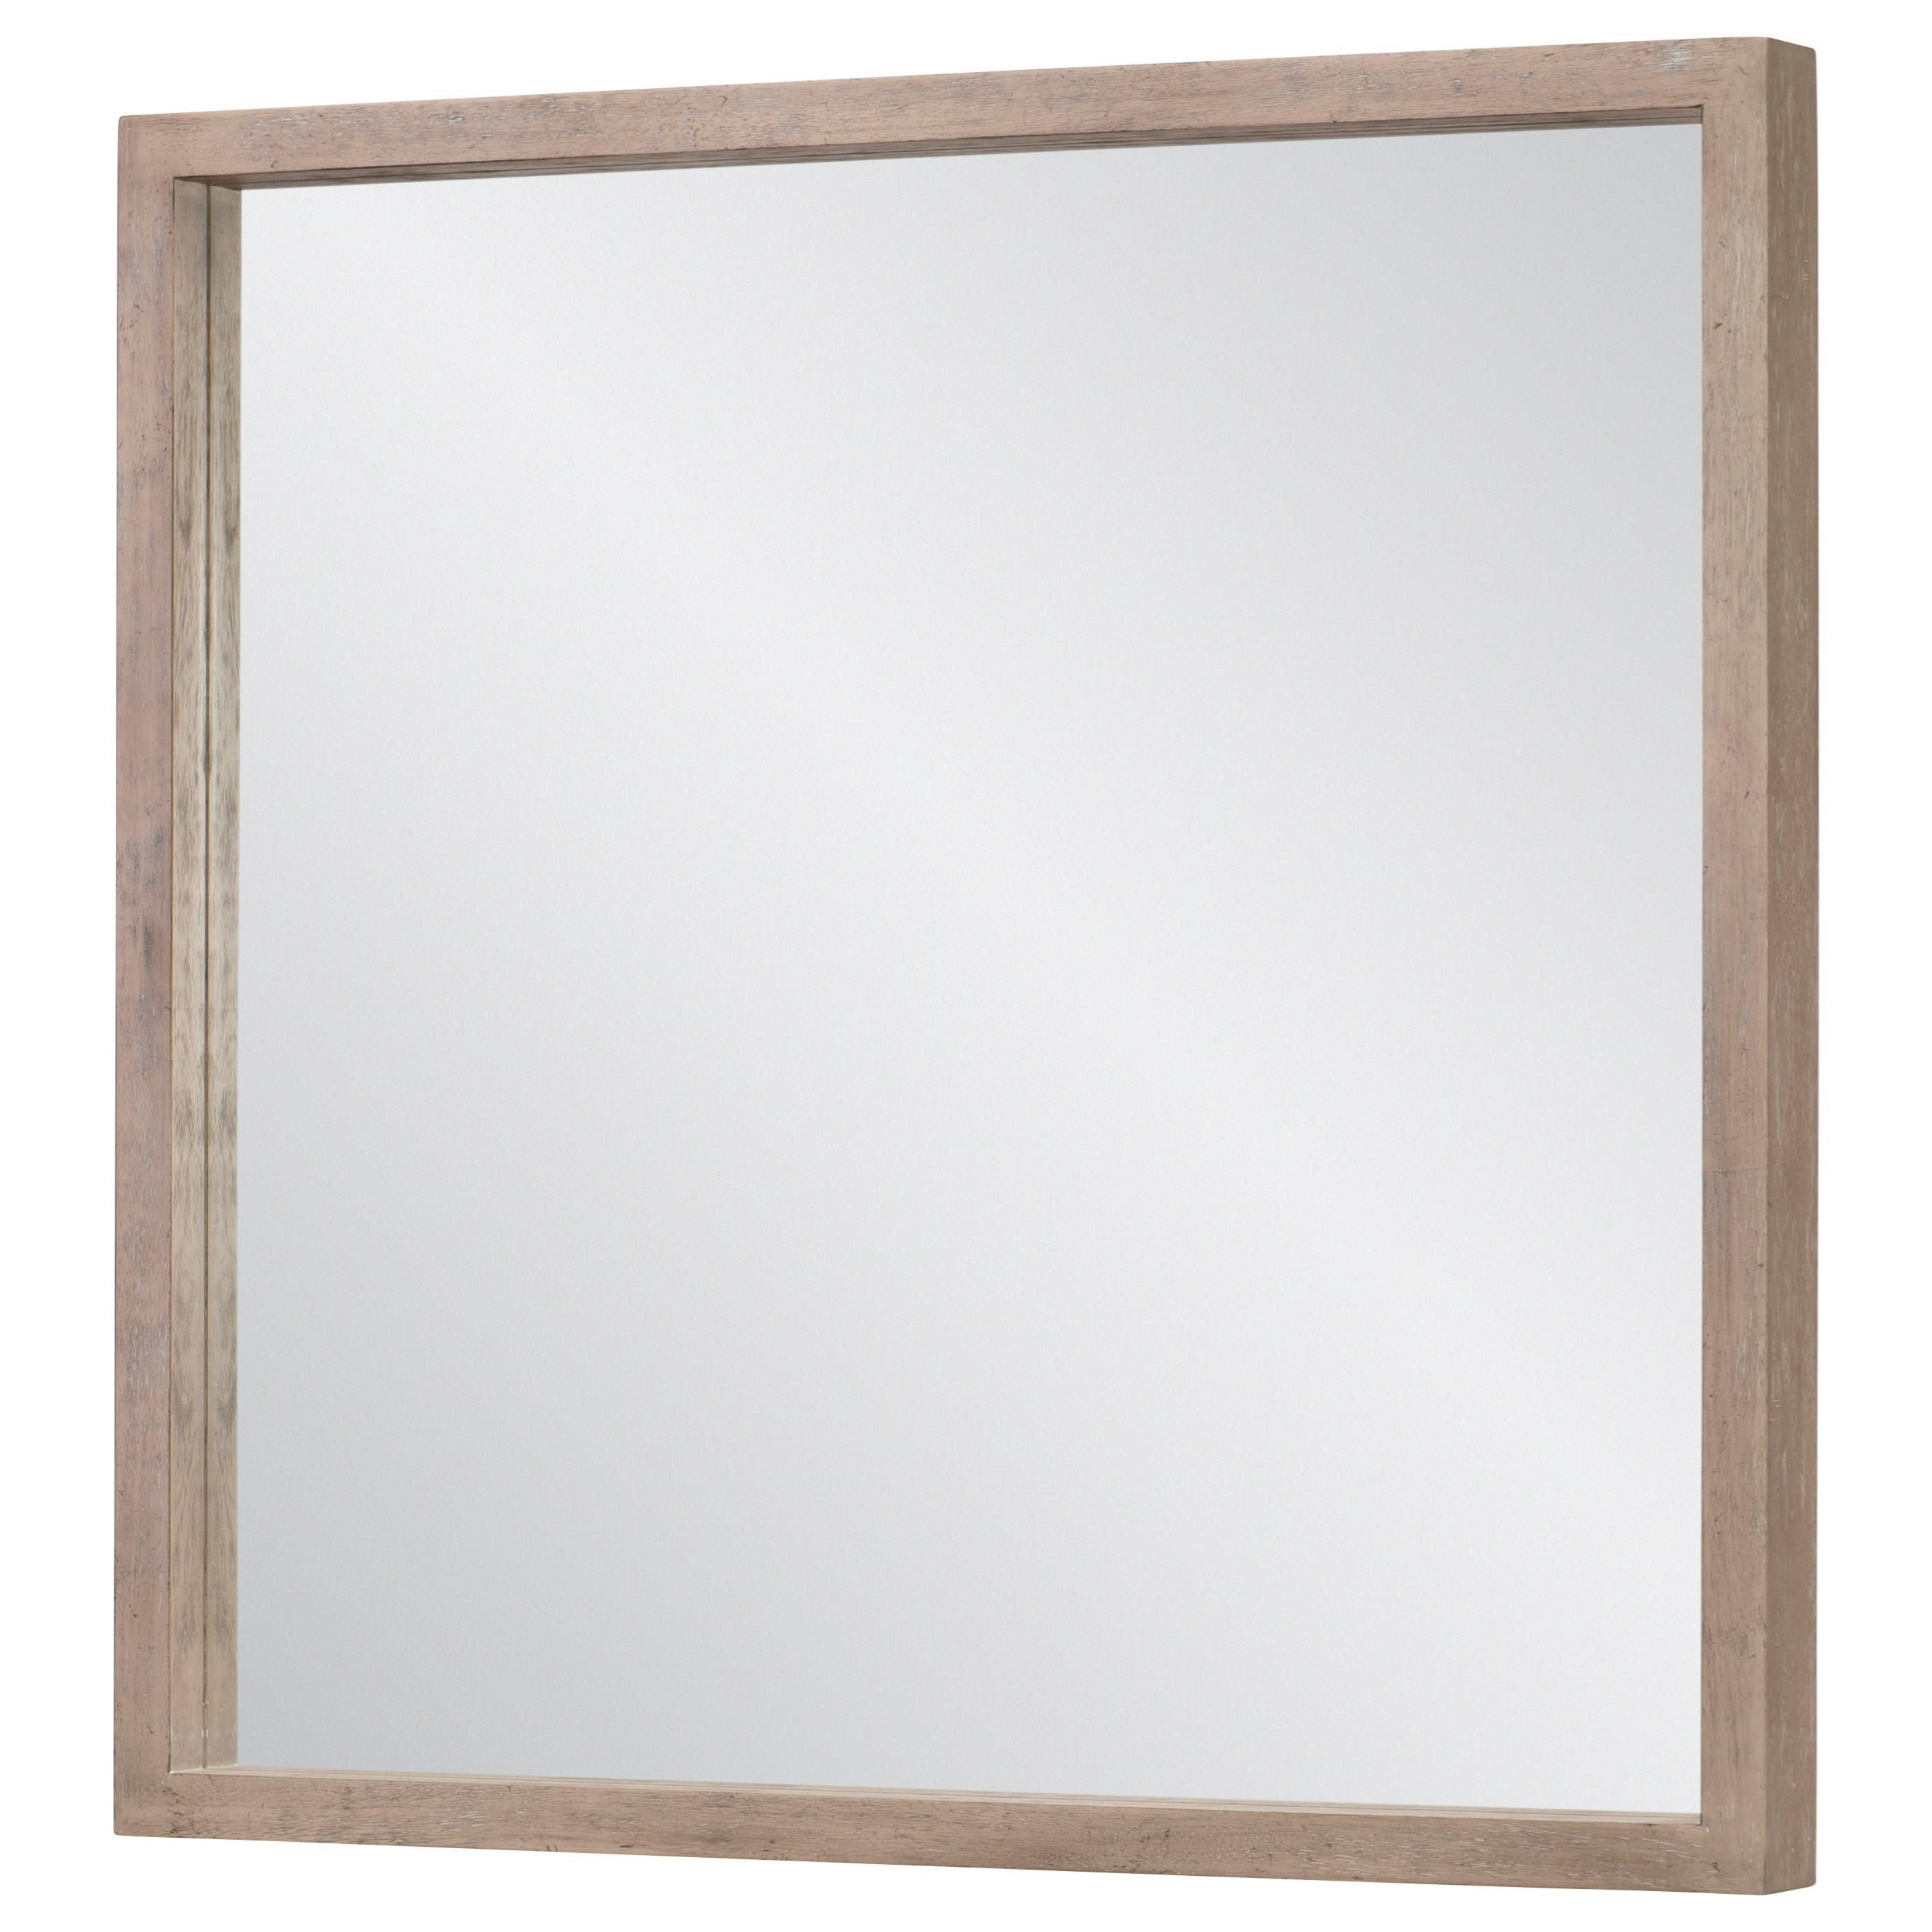 Milano Mirror by Rachael Ray Home by Legacy Classic at Crowley Furniture & Mattress